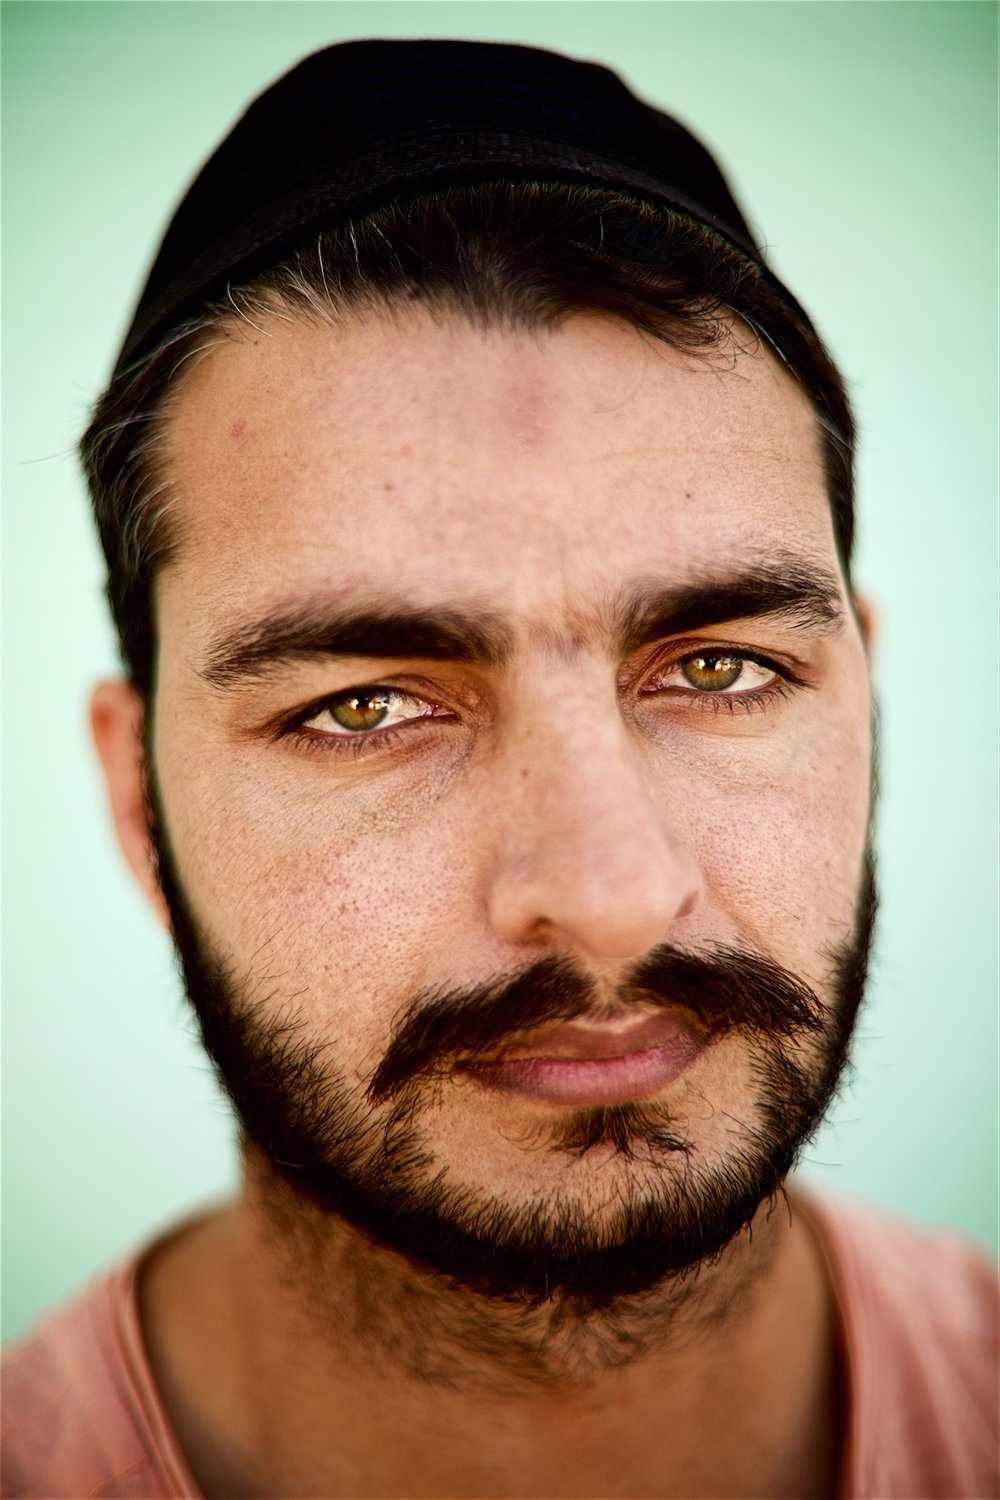 permanently-temporary-refugees-italy-rifugiati-italia-denis-bosnic-photography-portraits-4+(1).jpg